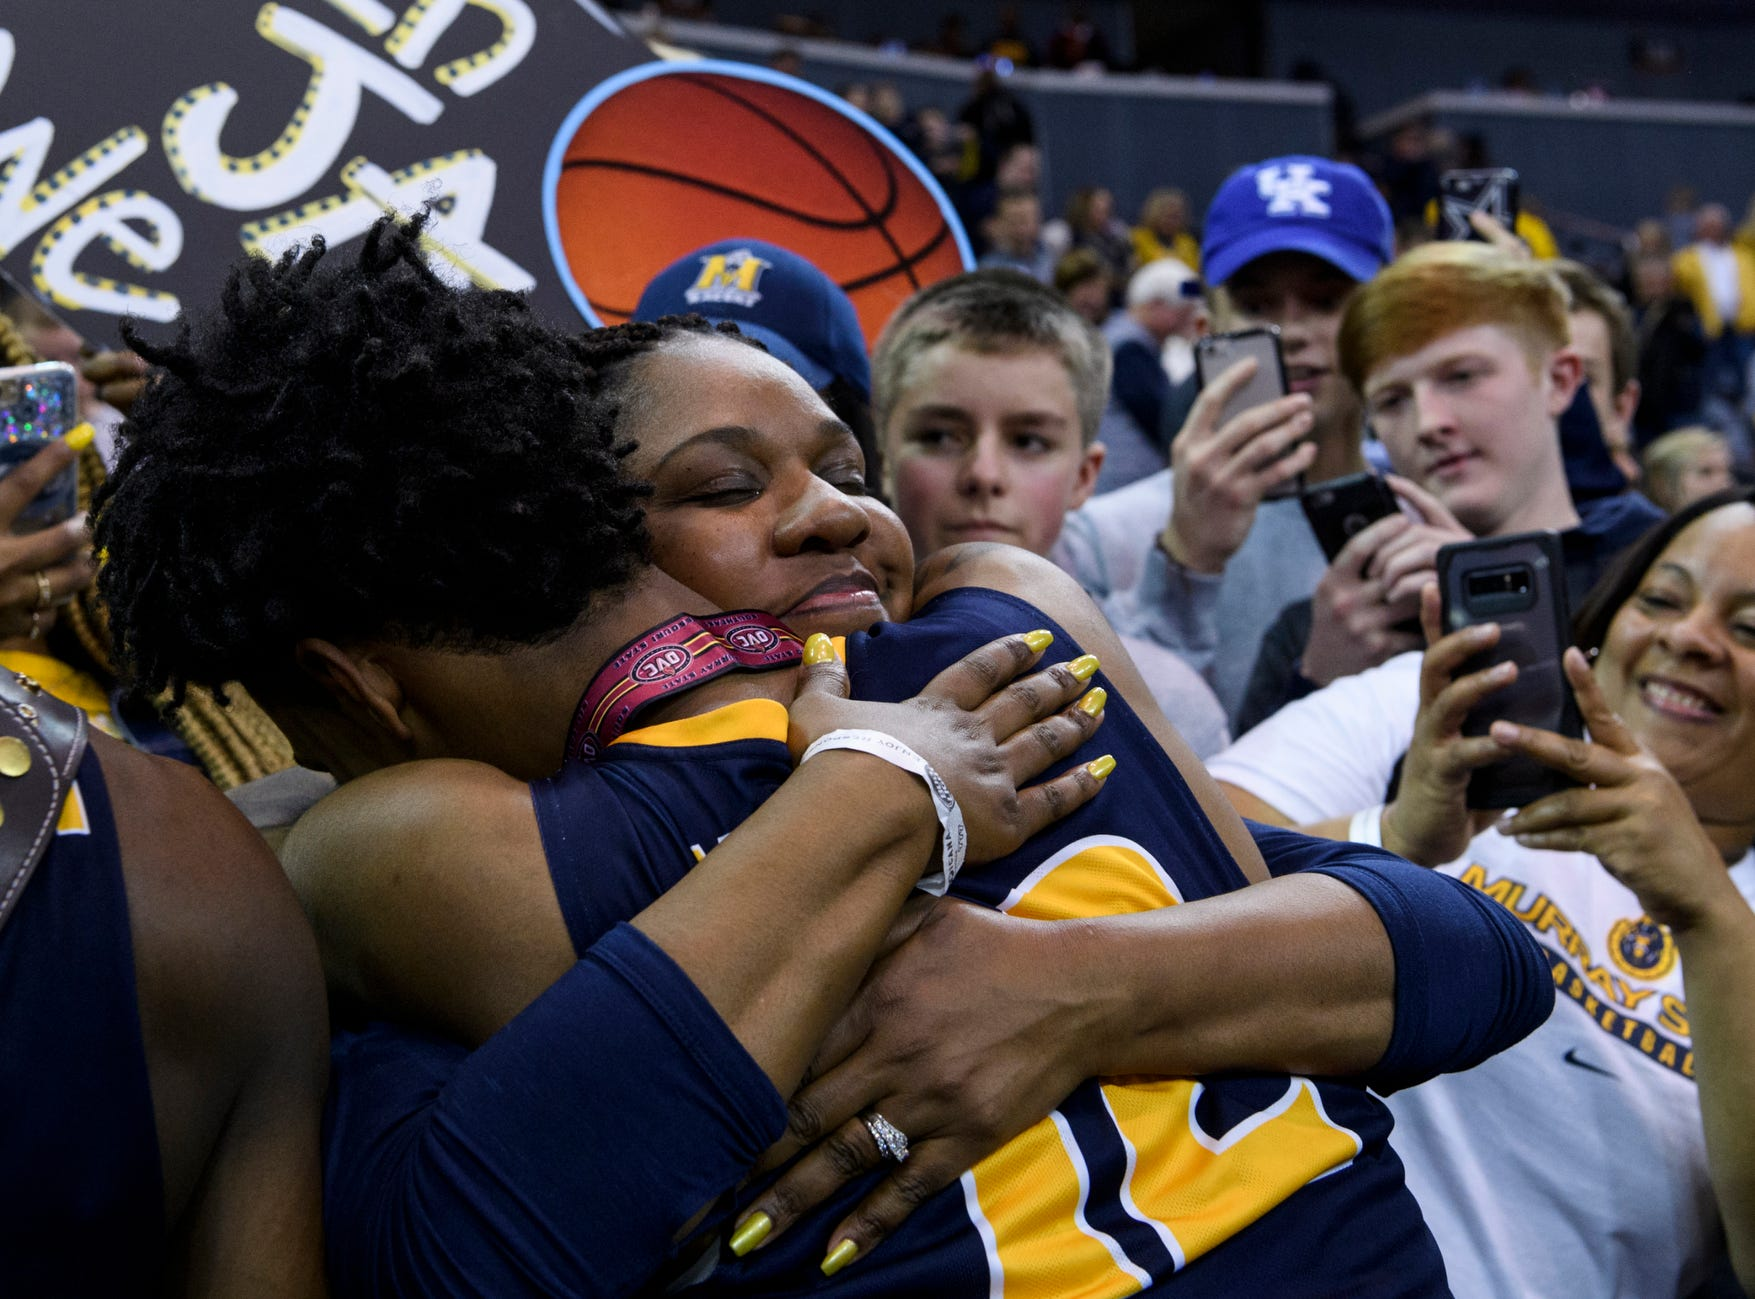 Murray State's Ja Morant (12) and his mother Jamie Morant embrace around a big crowd celebrating the team's Ohio Valley Conference championship win at Ford Center in Evansville, Ind., Saturday, March 9, 2019. The Racers earned the OVC men's championship title after defeating the Belmont Bruins, 77-65.